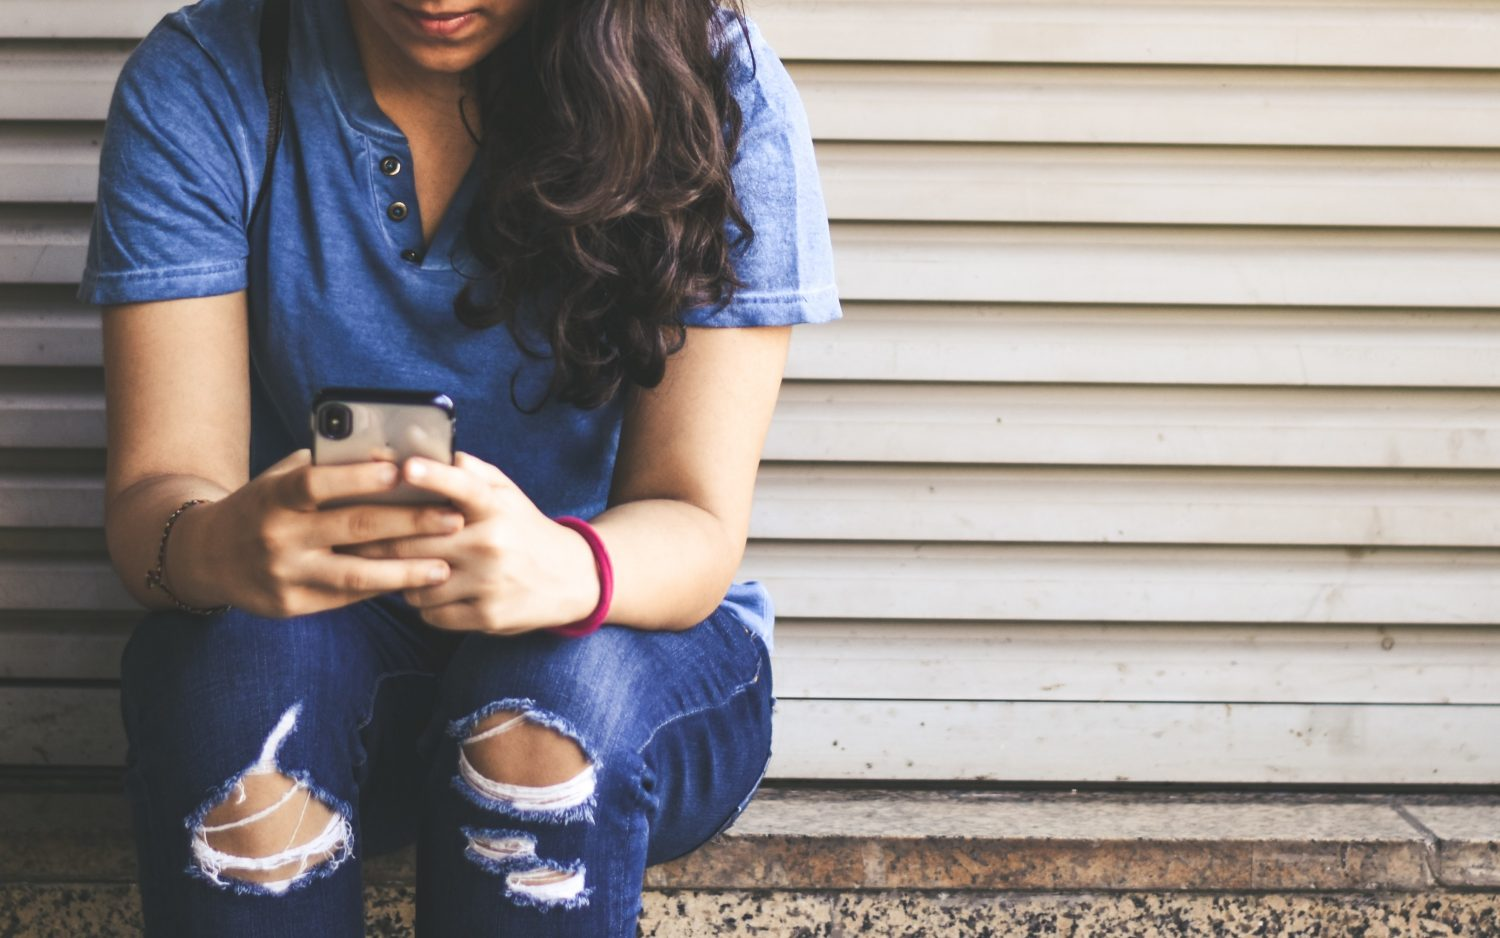 How to Text Your Crush – Easy Tips To Get the Conversation Started